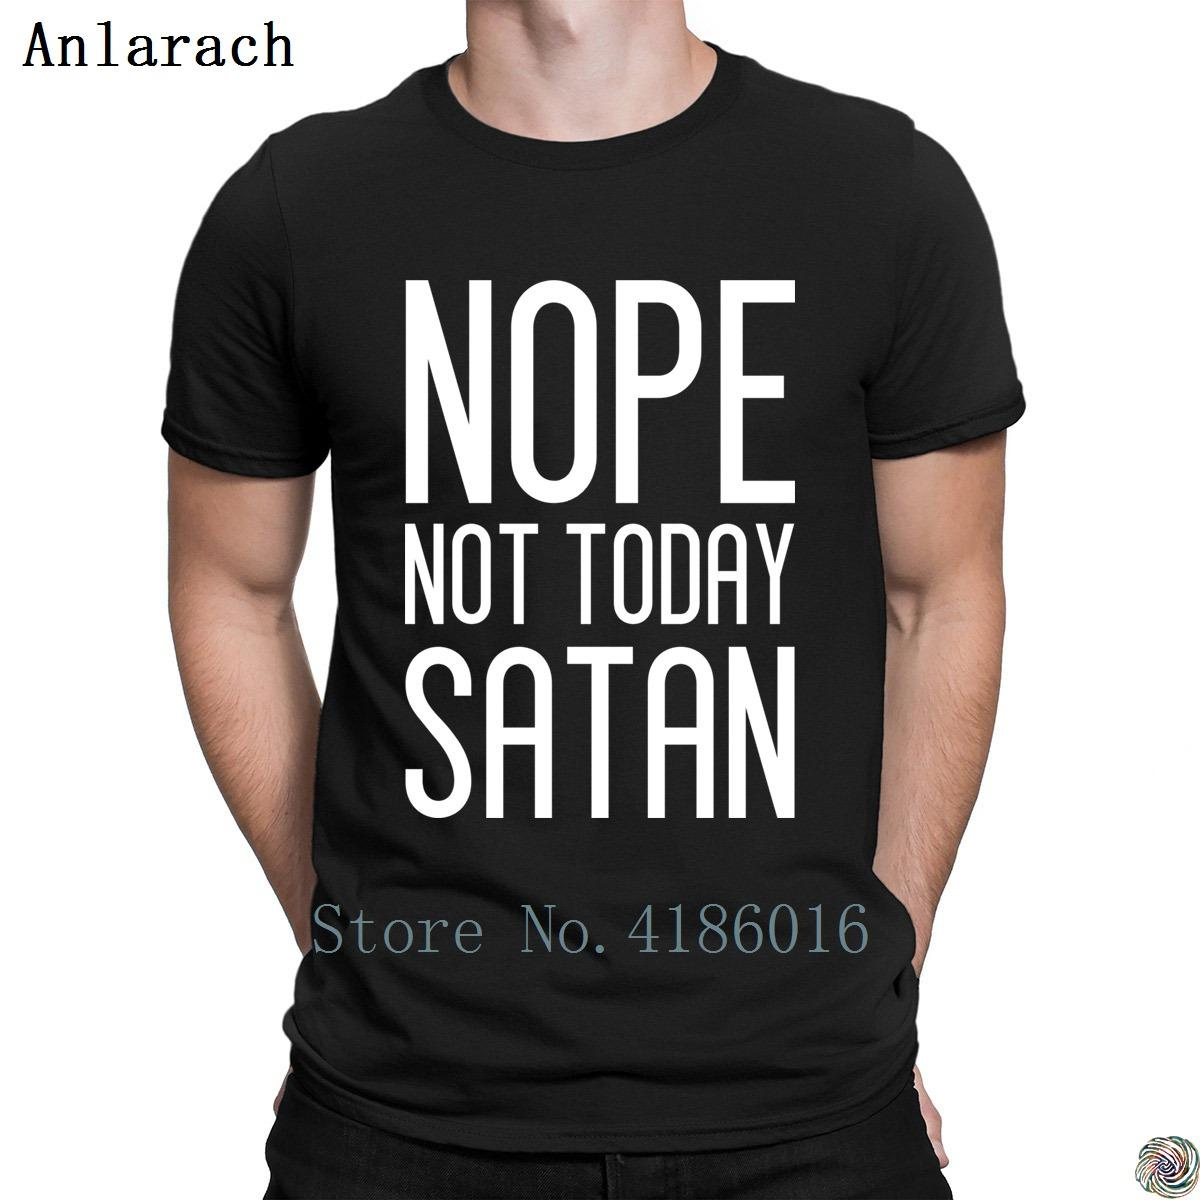 5efaefcf NOPE NOT TODAY SATAN T Shirts Personality Big Sizes Costume Classical T  Shirt For Men Summer Top Pictures Hot Sale Spring Great Tee Shirt Designs  Funny ...